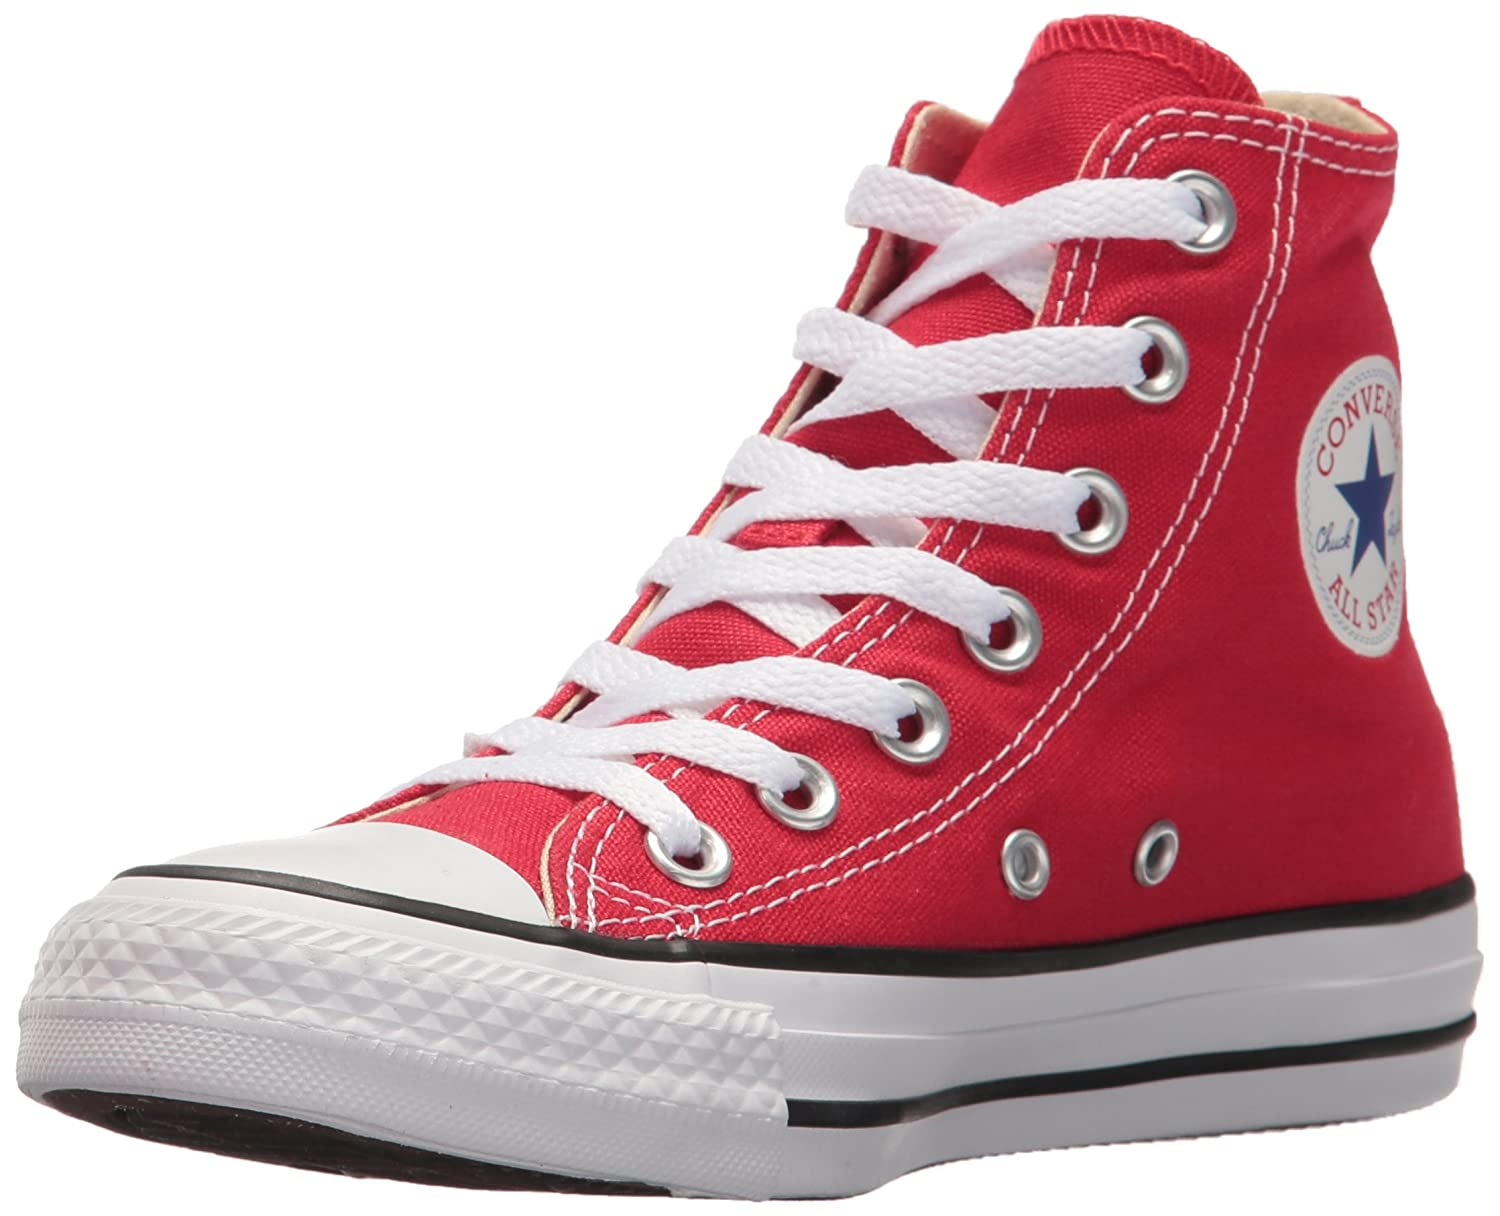 Converse Chuck Taylor Taylor Etoiles Low Top Sneakers Sneakers Sneaker B000W069PS Mode Rouge 227a3c8 - automatisms.space